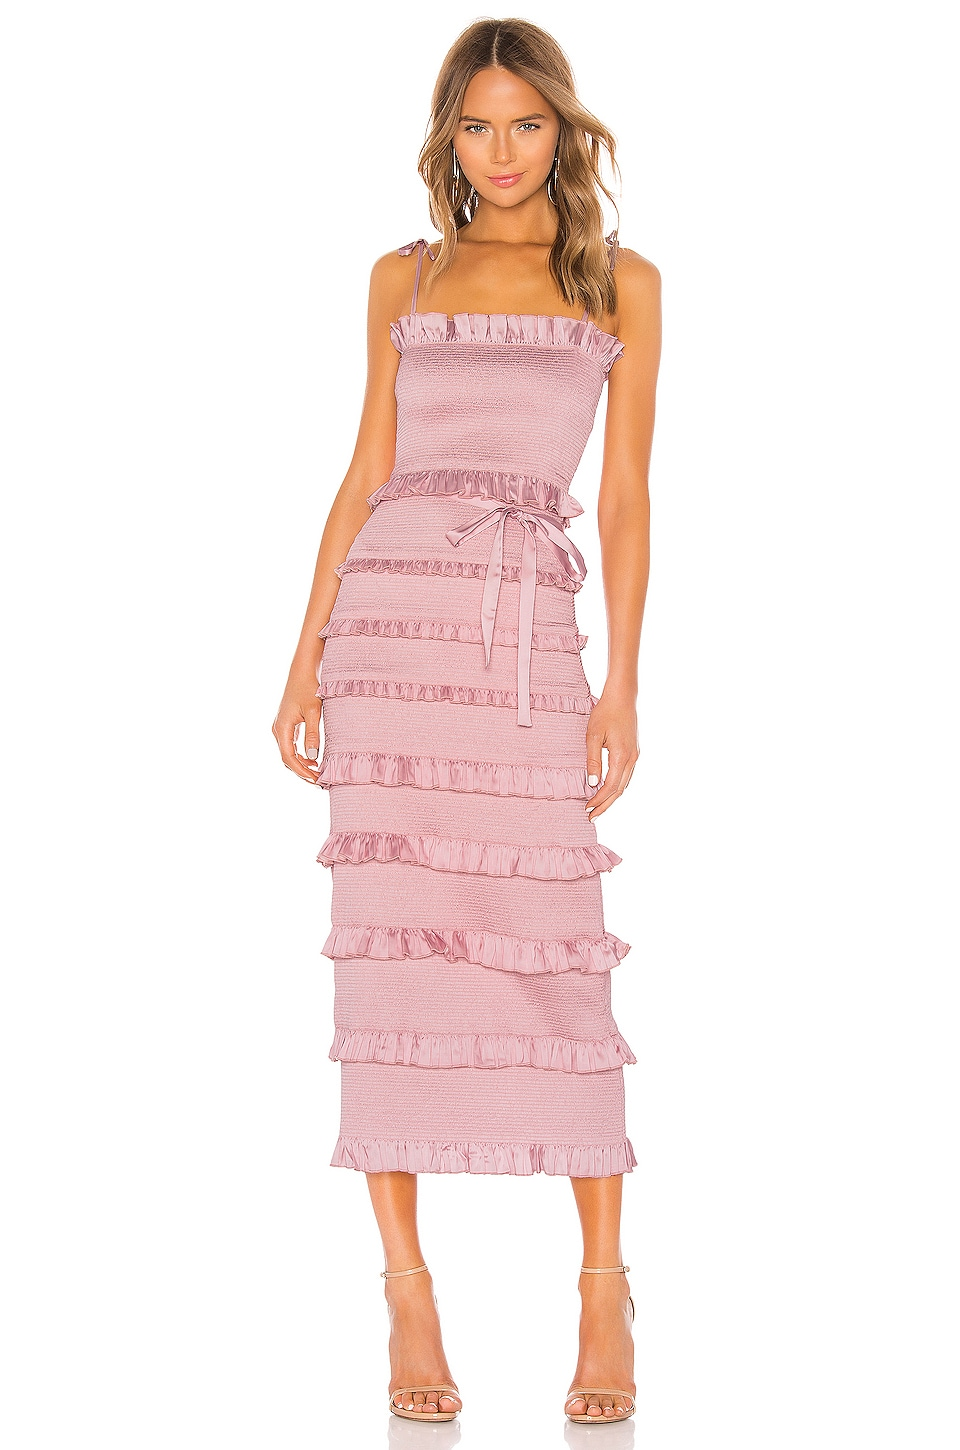 V. Chapman Lily Dress in Pink Parfait